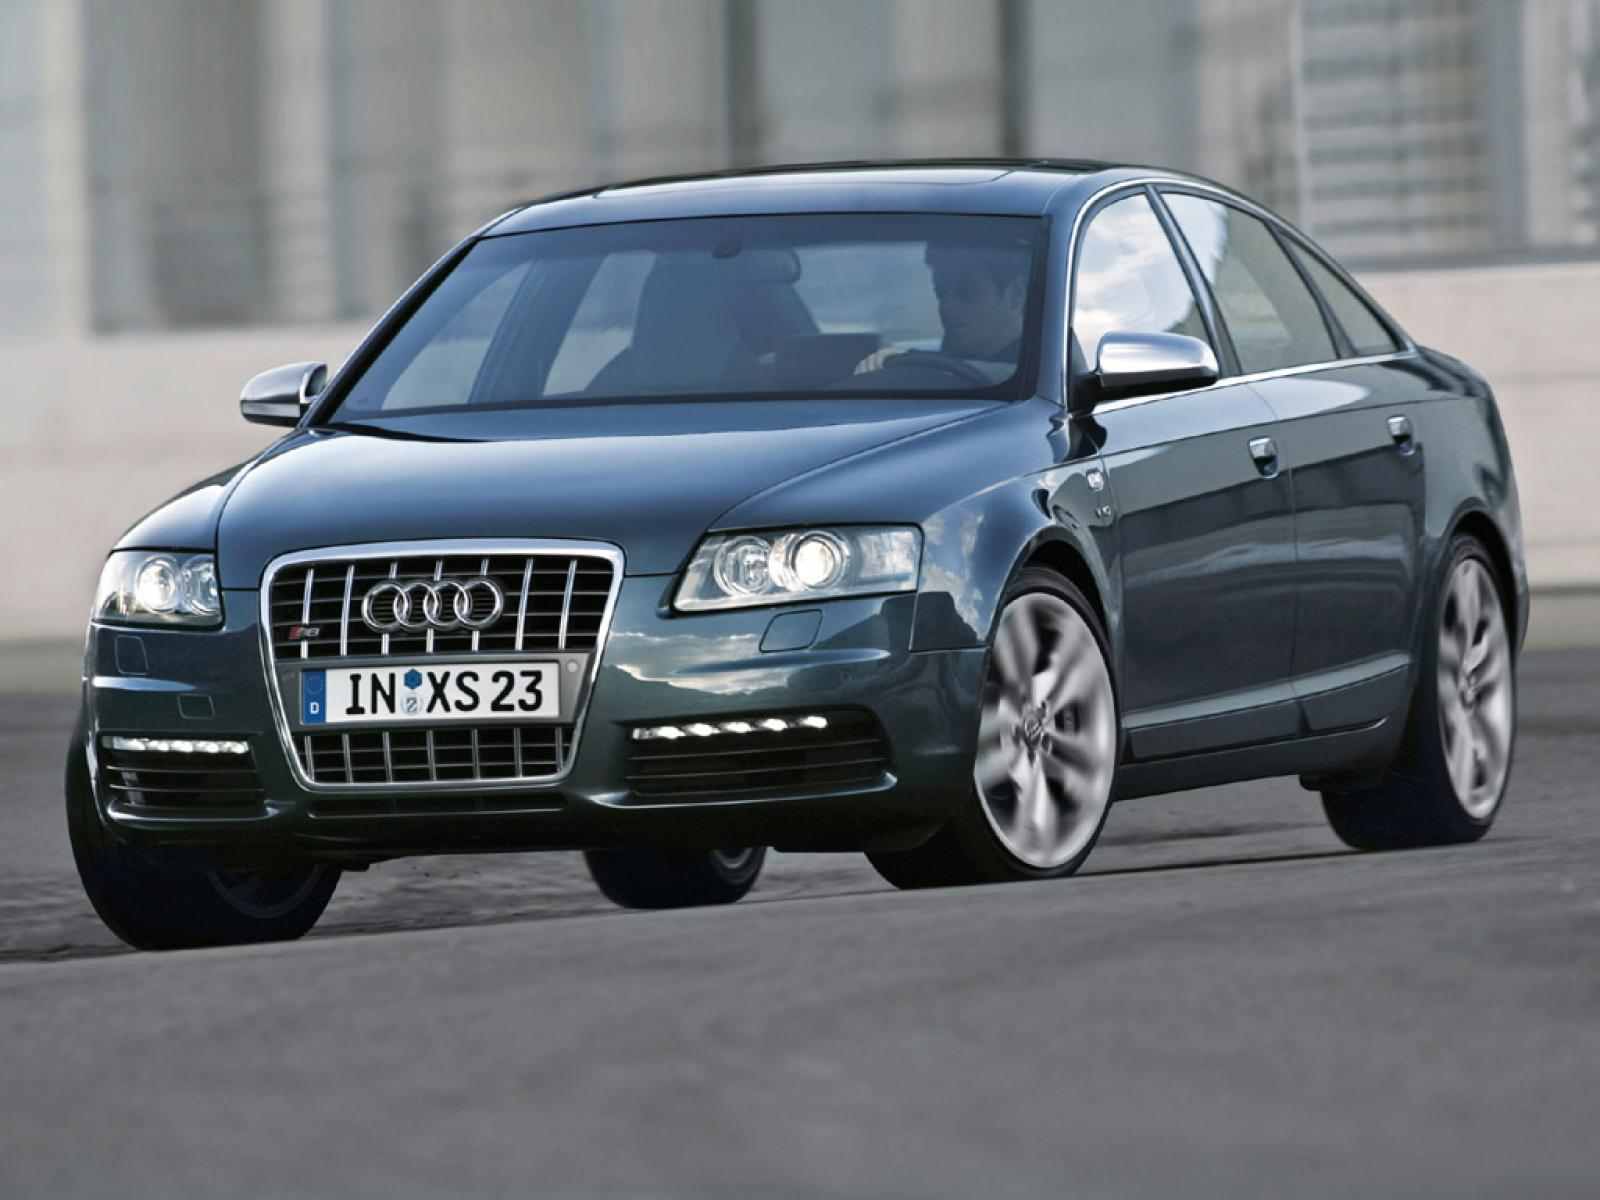 2009 Audi S6 Information And Photos Zombiedrive S2 Fuse Box 800 1024 1280 1600 Origin